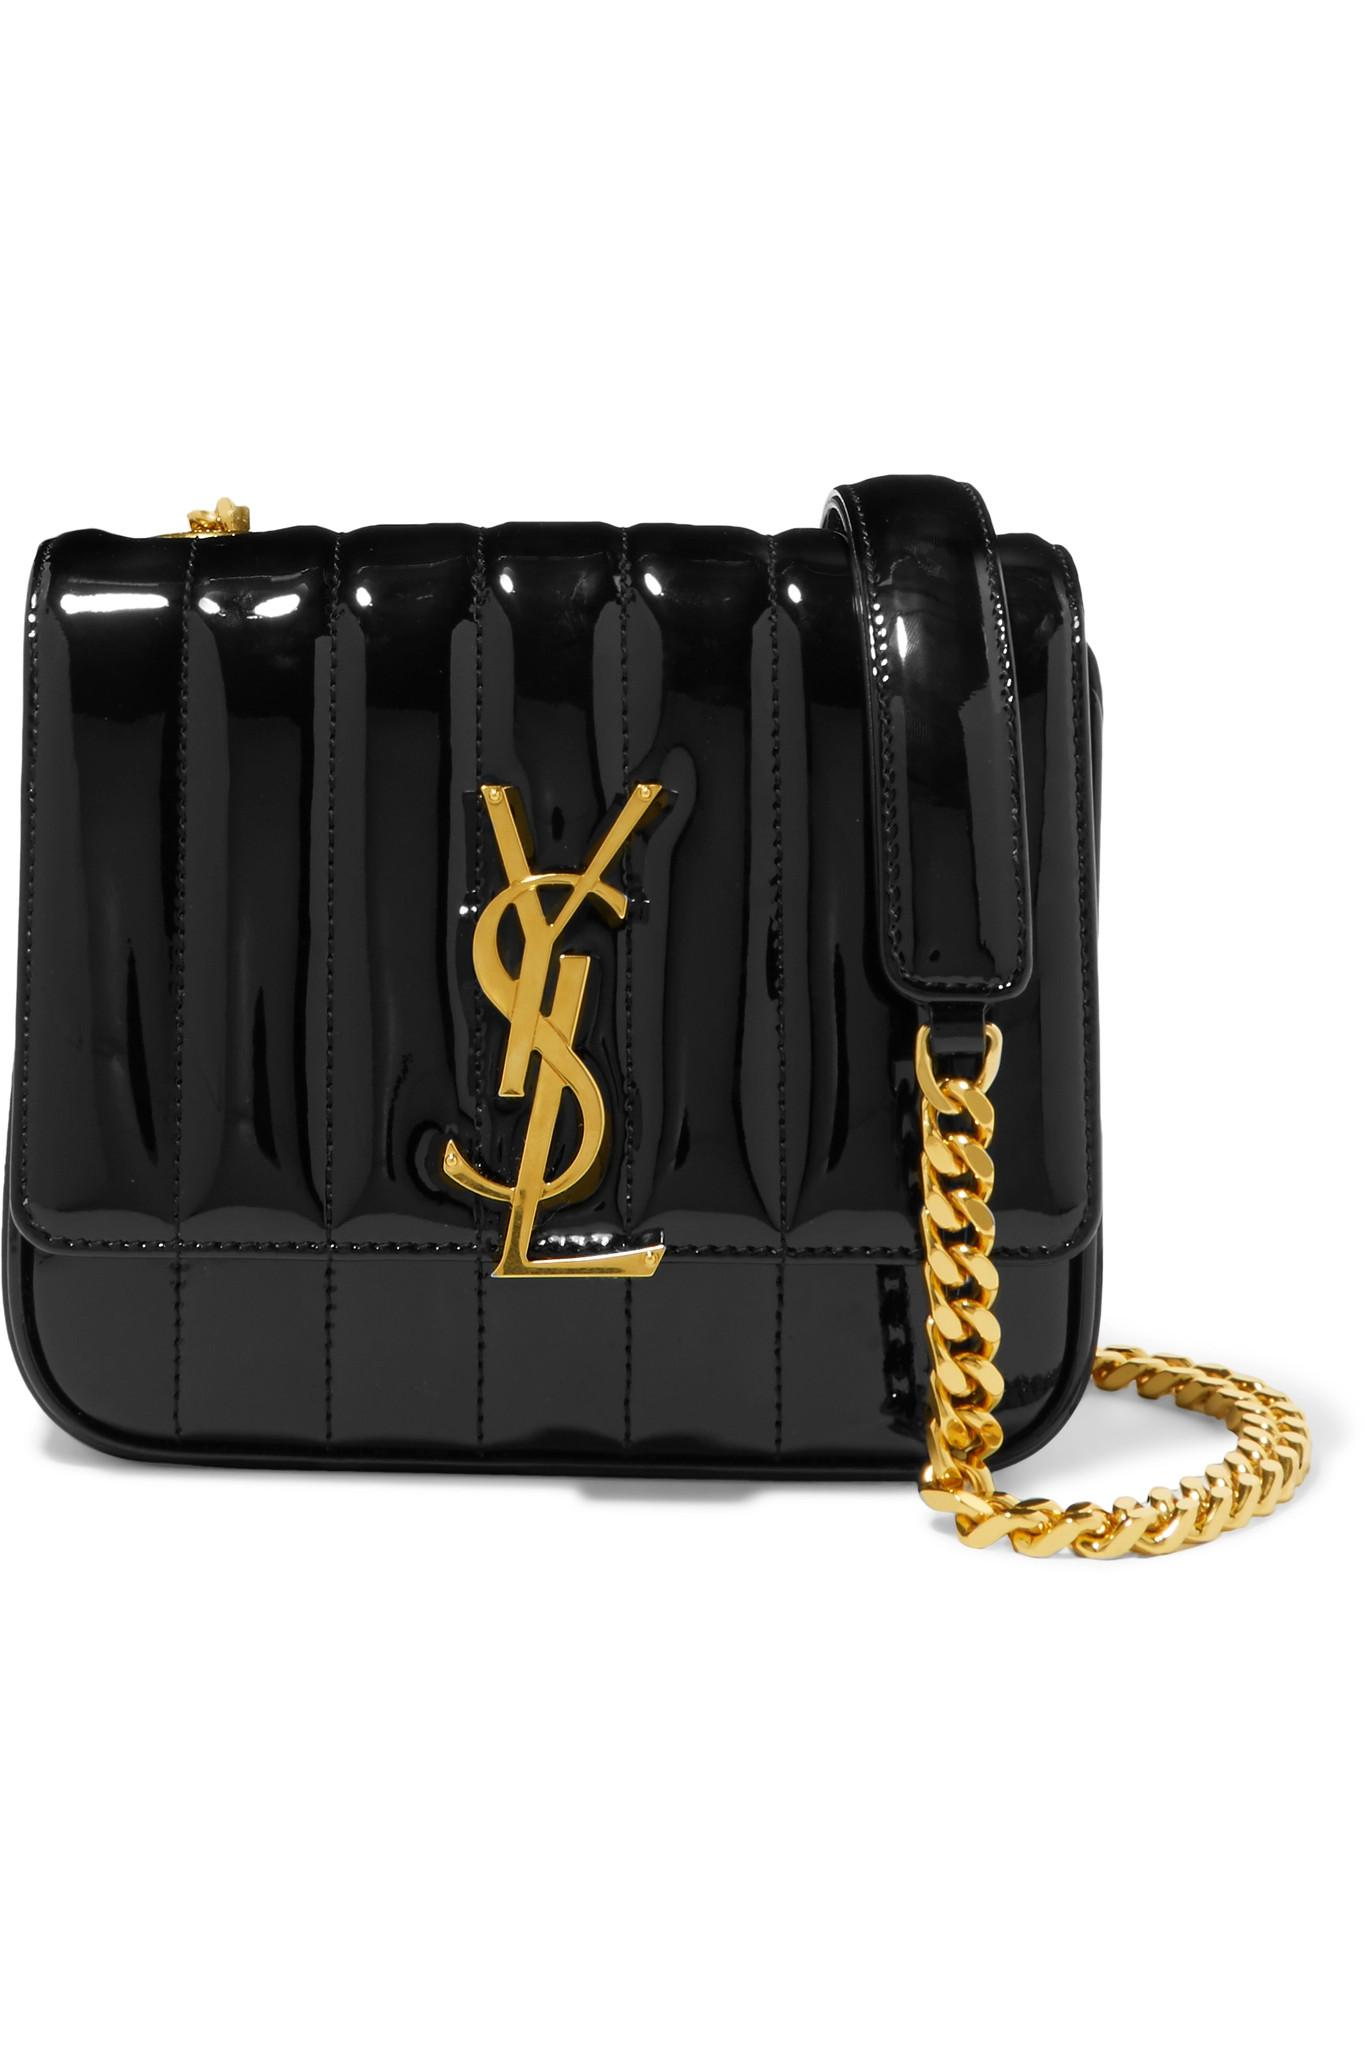 d1e593319a Saint Laurent Black Stripe Vicky Leather Shoulder Bag in Black ...